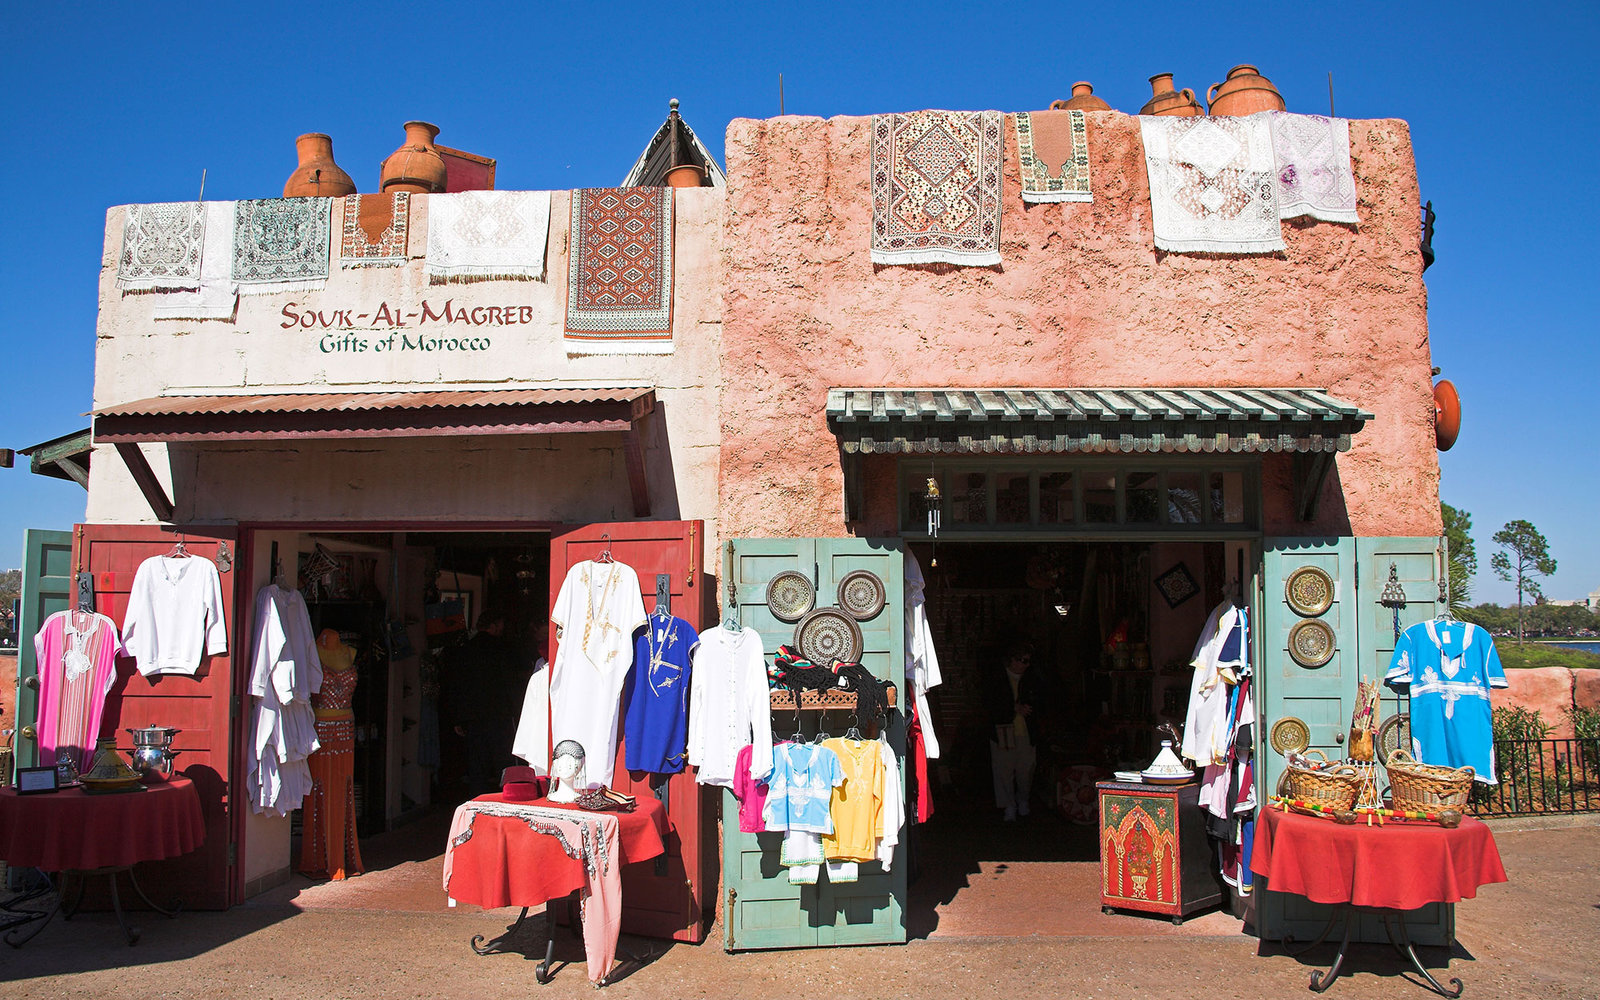 A6F88W Shop in Moroccan section of EPCOT Center, World Showcase, Disney World, Orlando, Florida, USA. Image shot 2007. Exact date unknown.